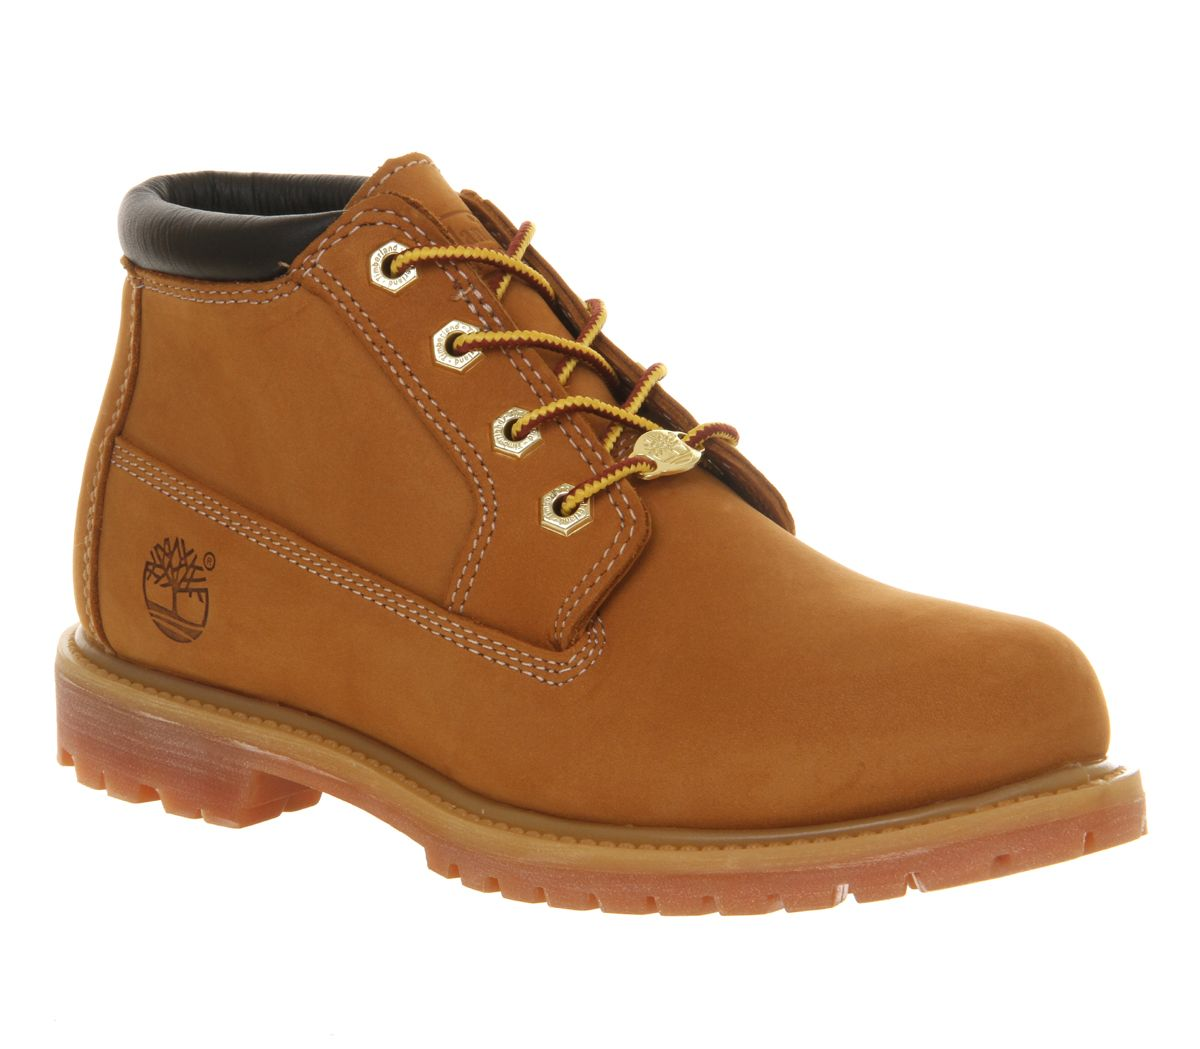 Nellie Chukka Double Waterproof Boots | Timberland ankle